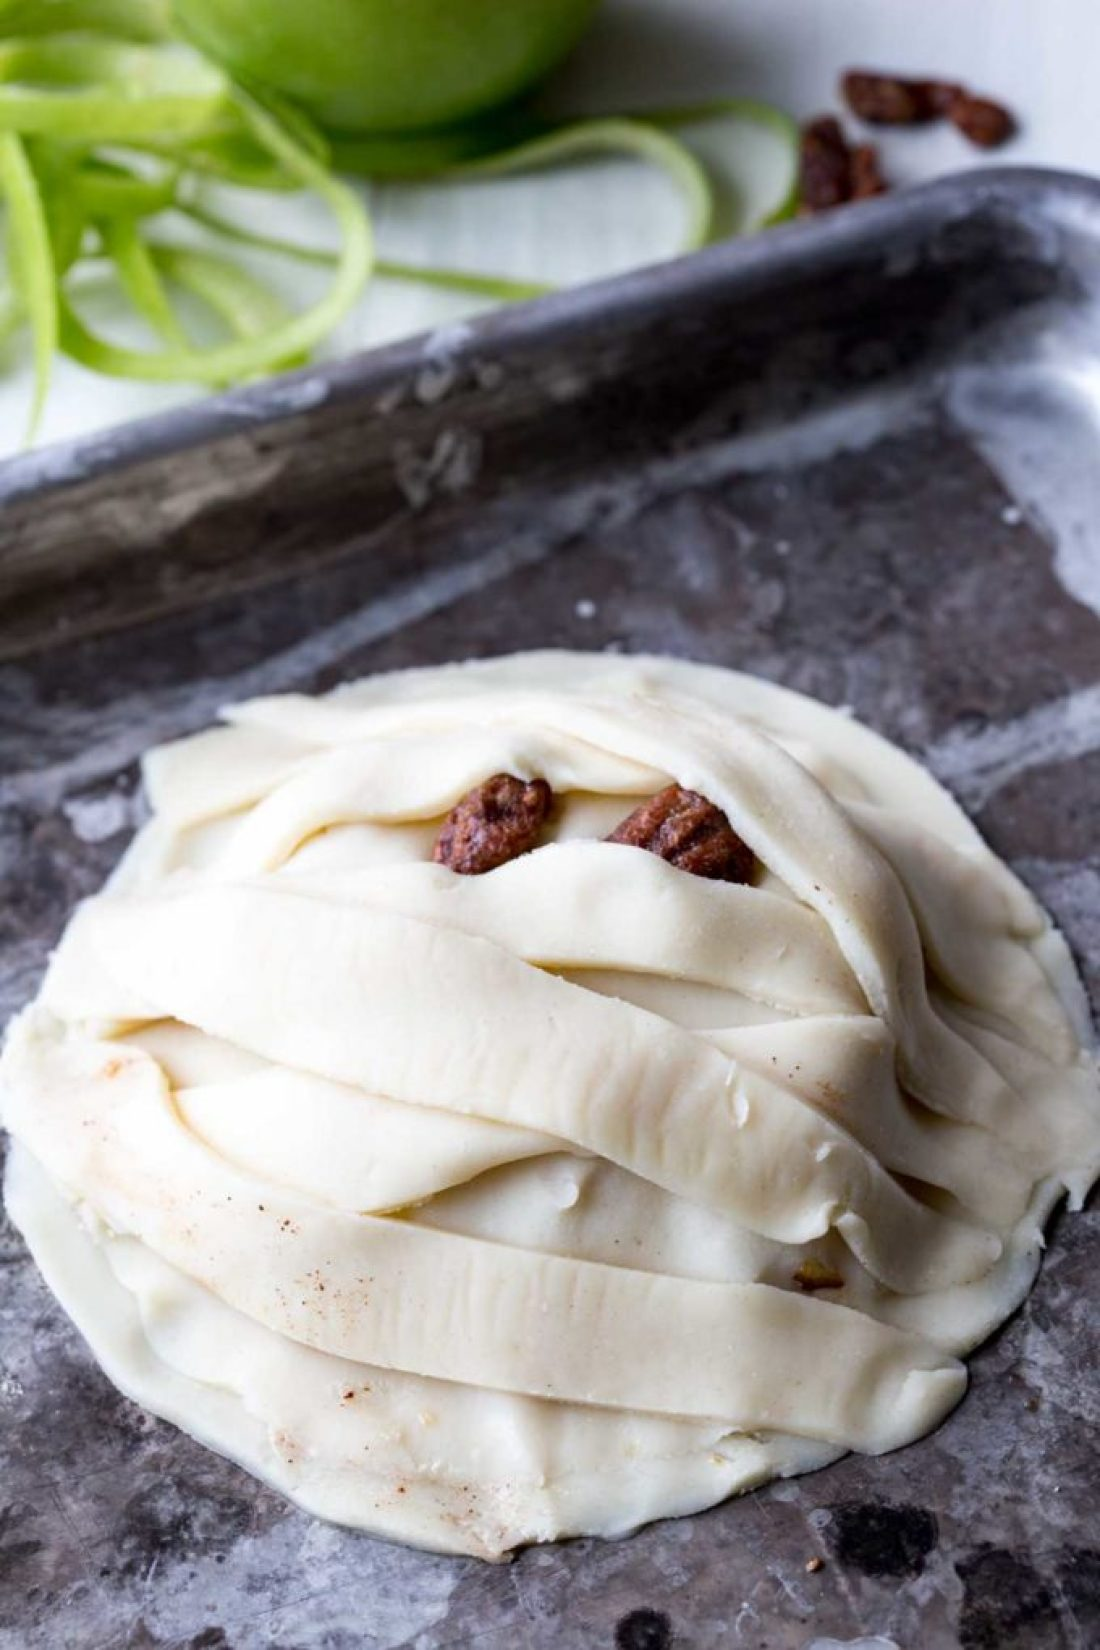 Layered to look like a mummy, this apple hand pie is awesome!